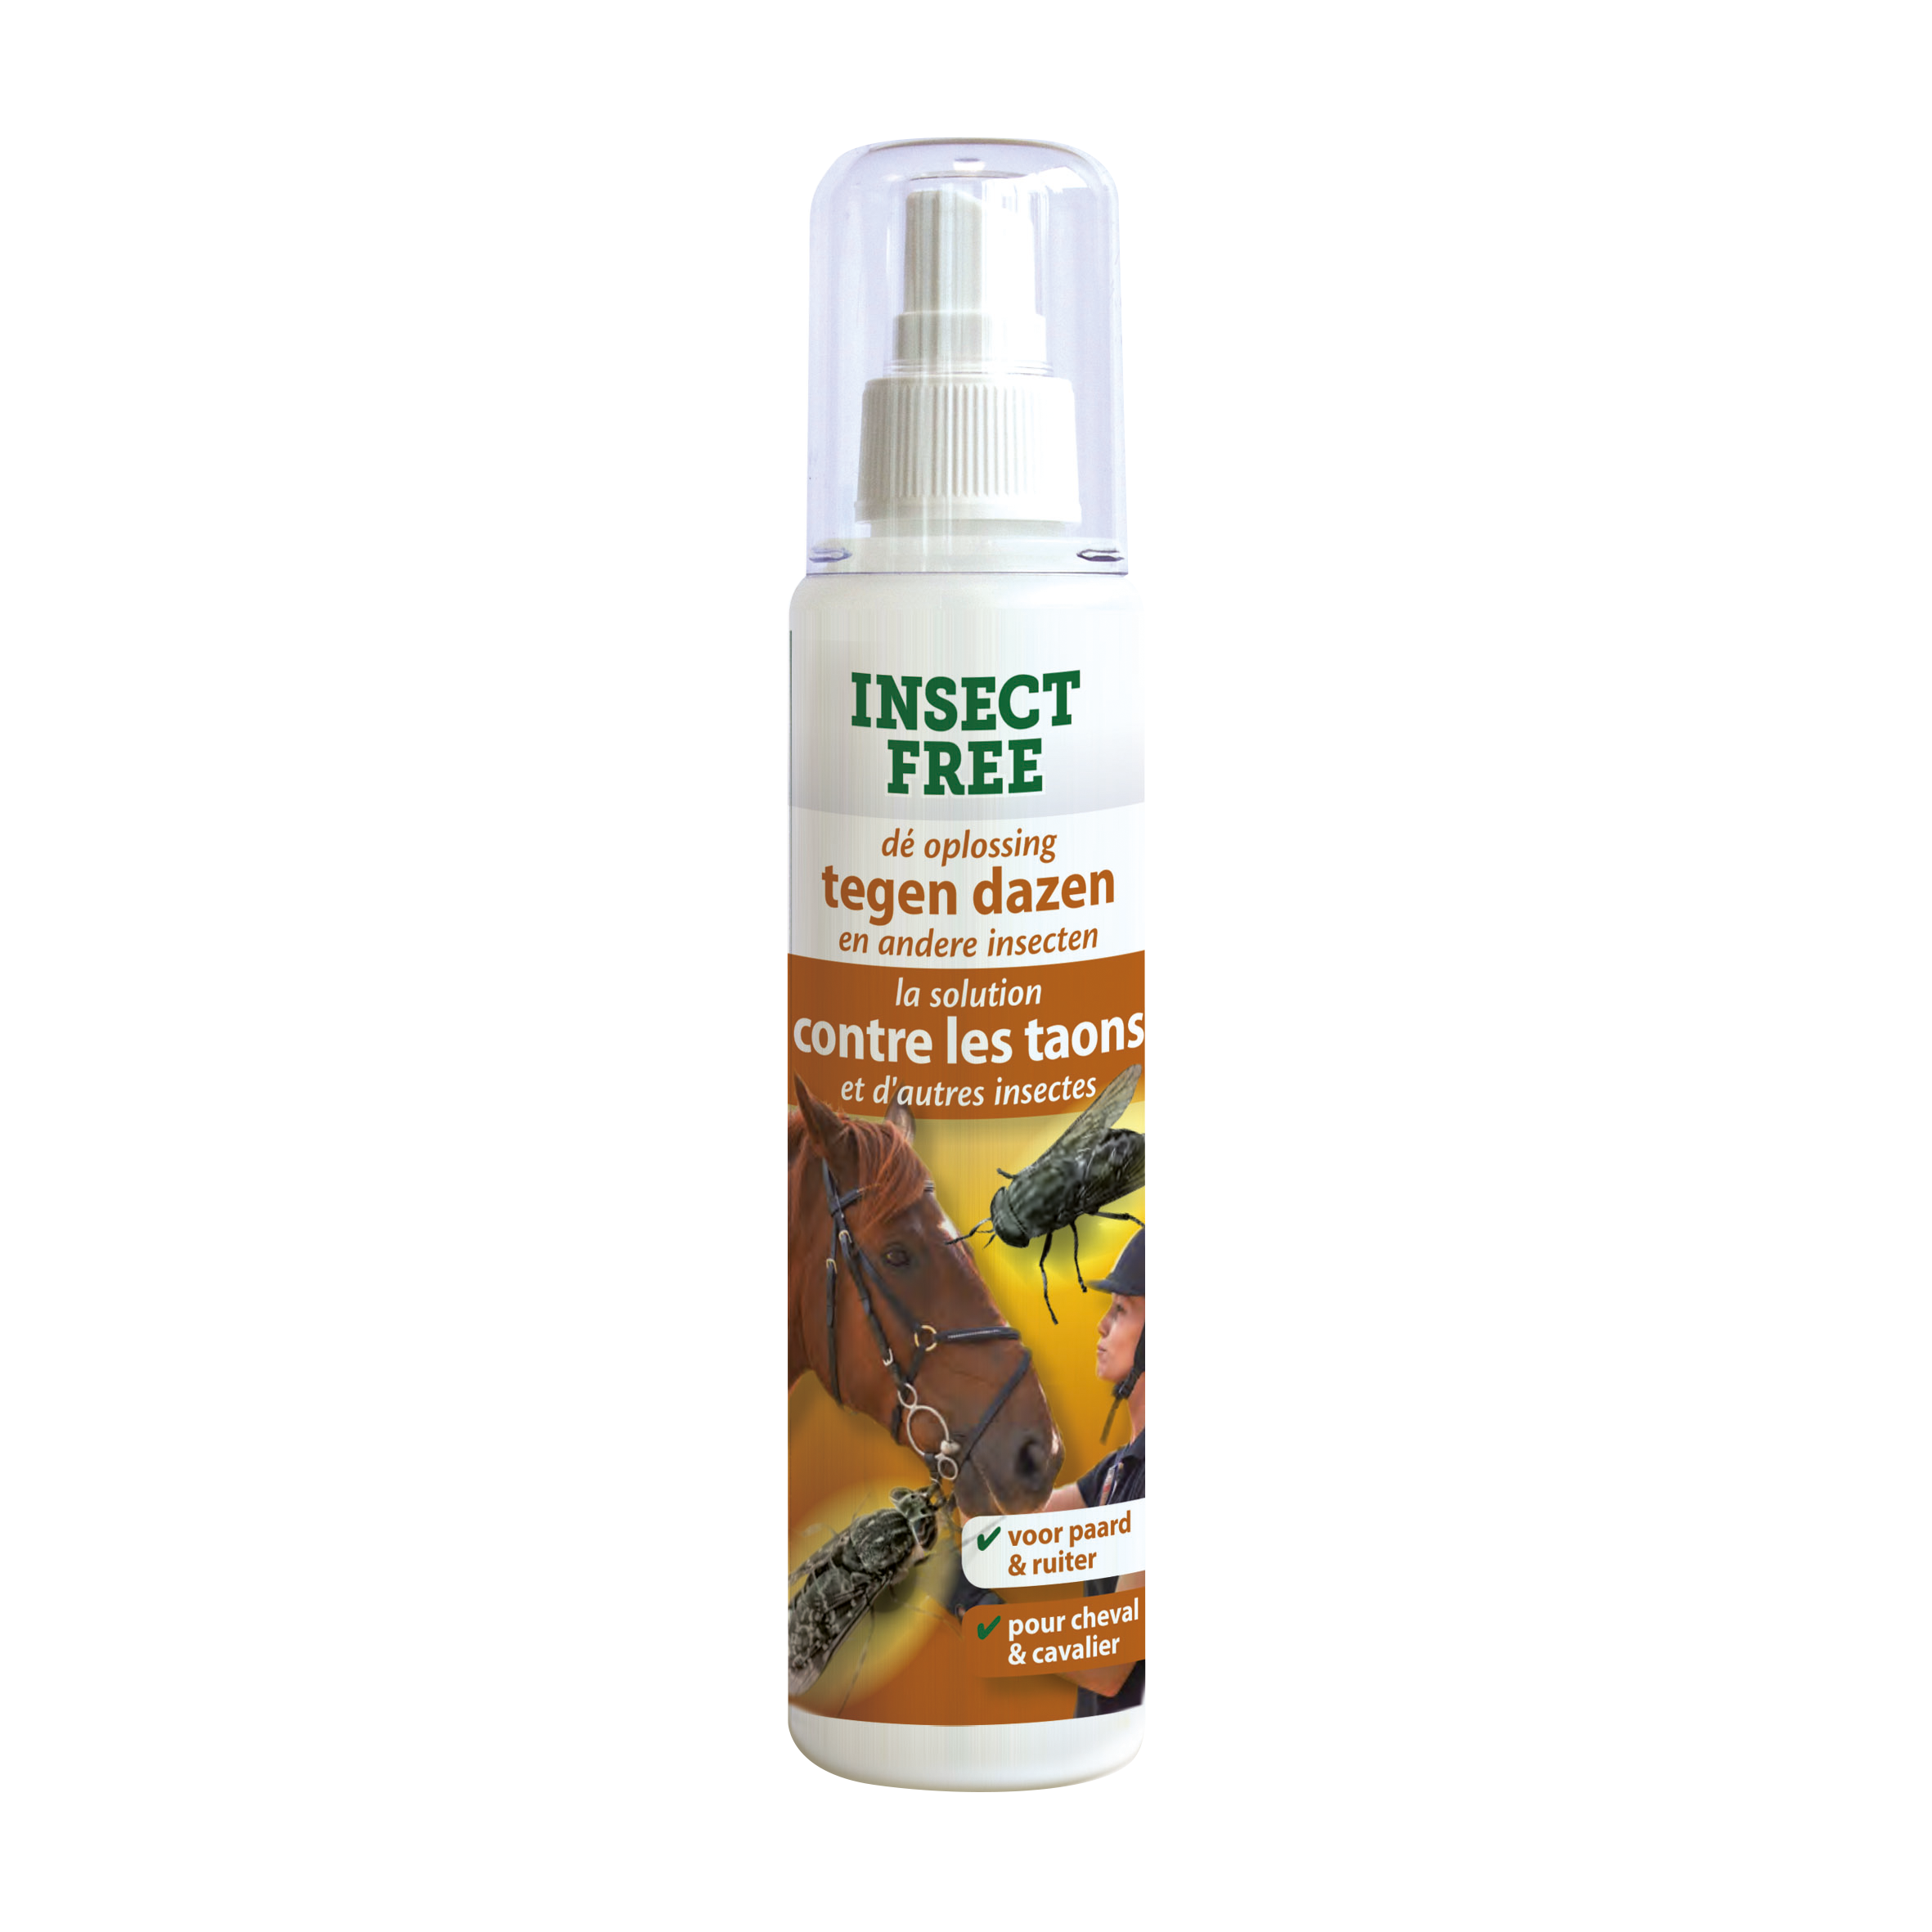 Insect Free 200 ml image